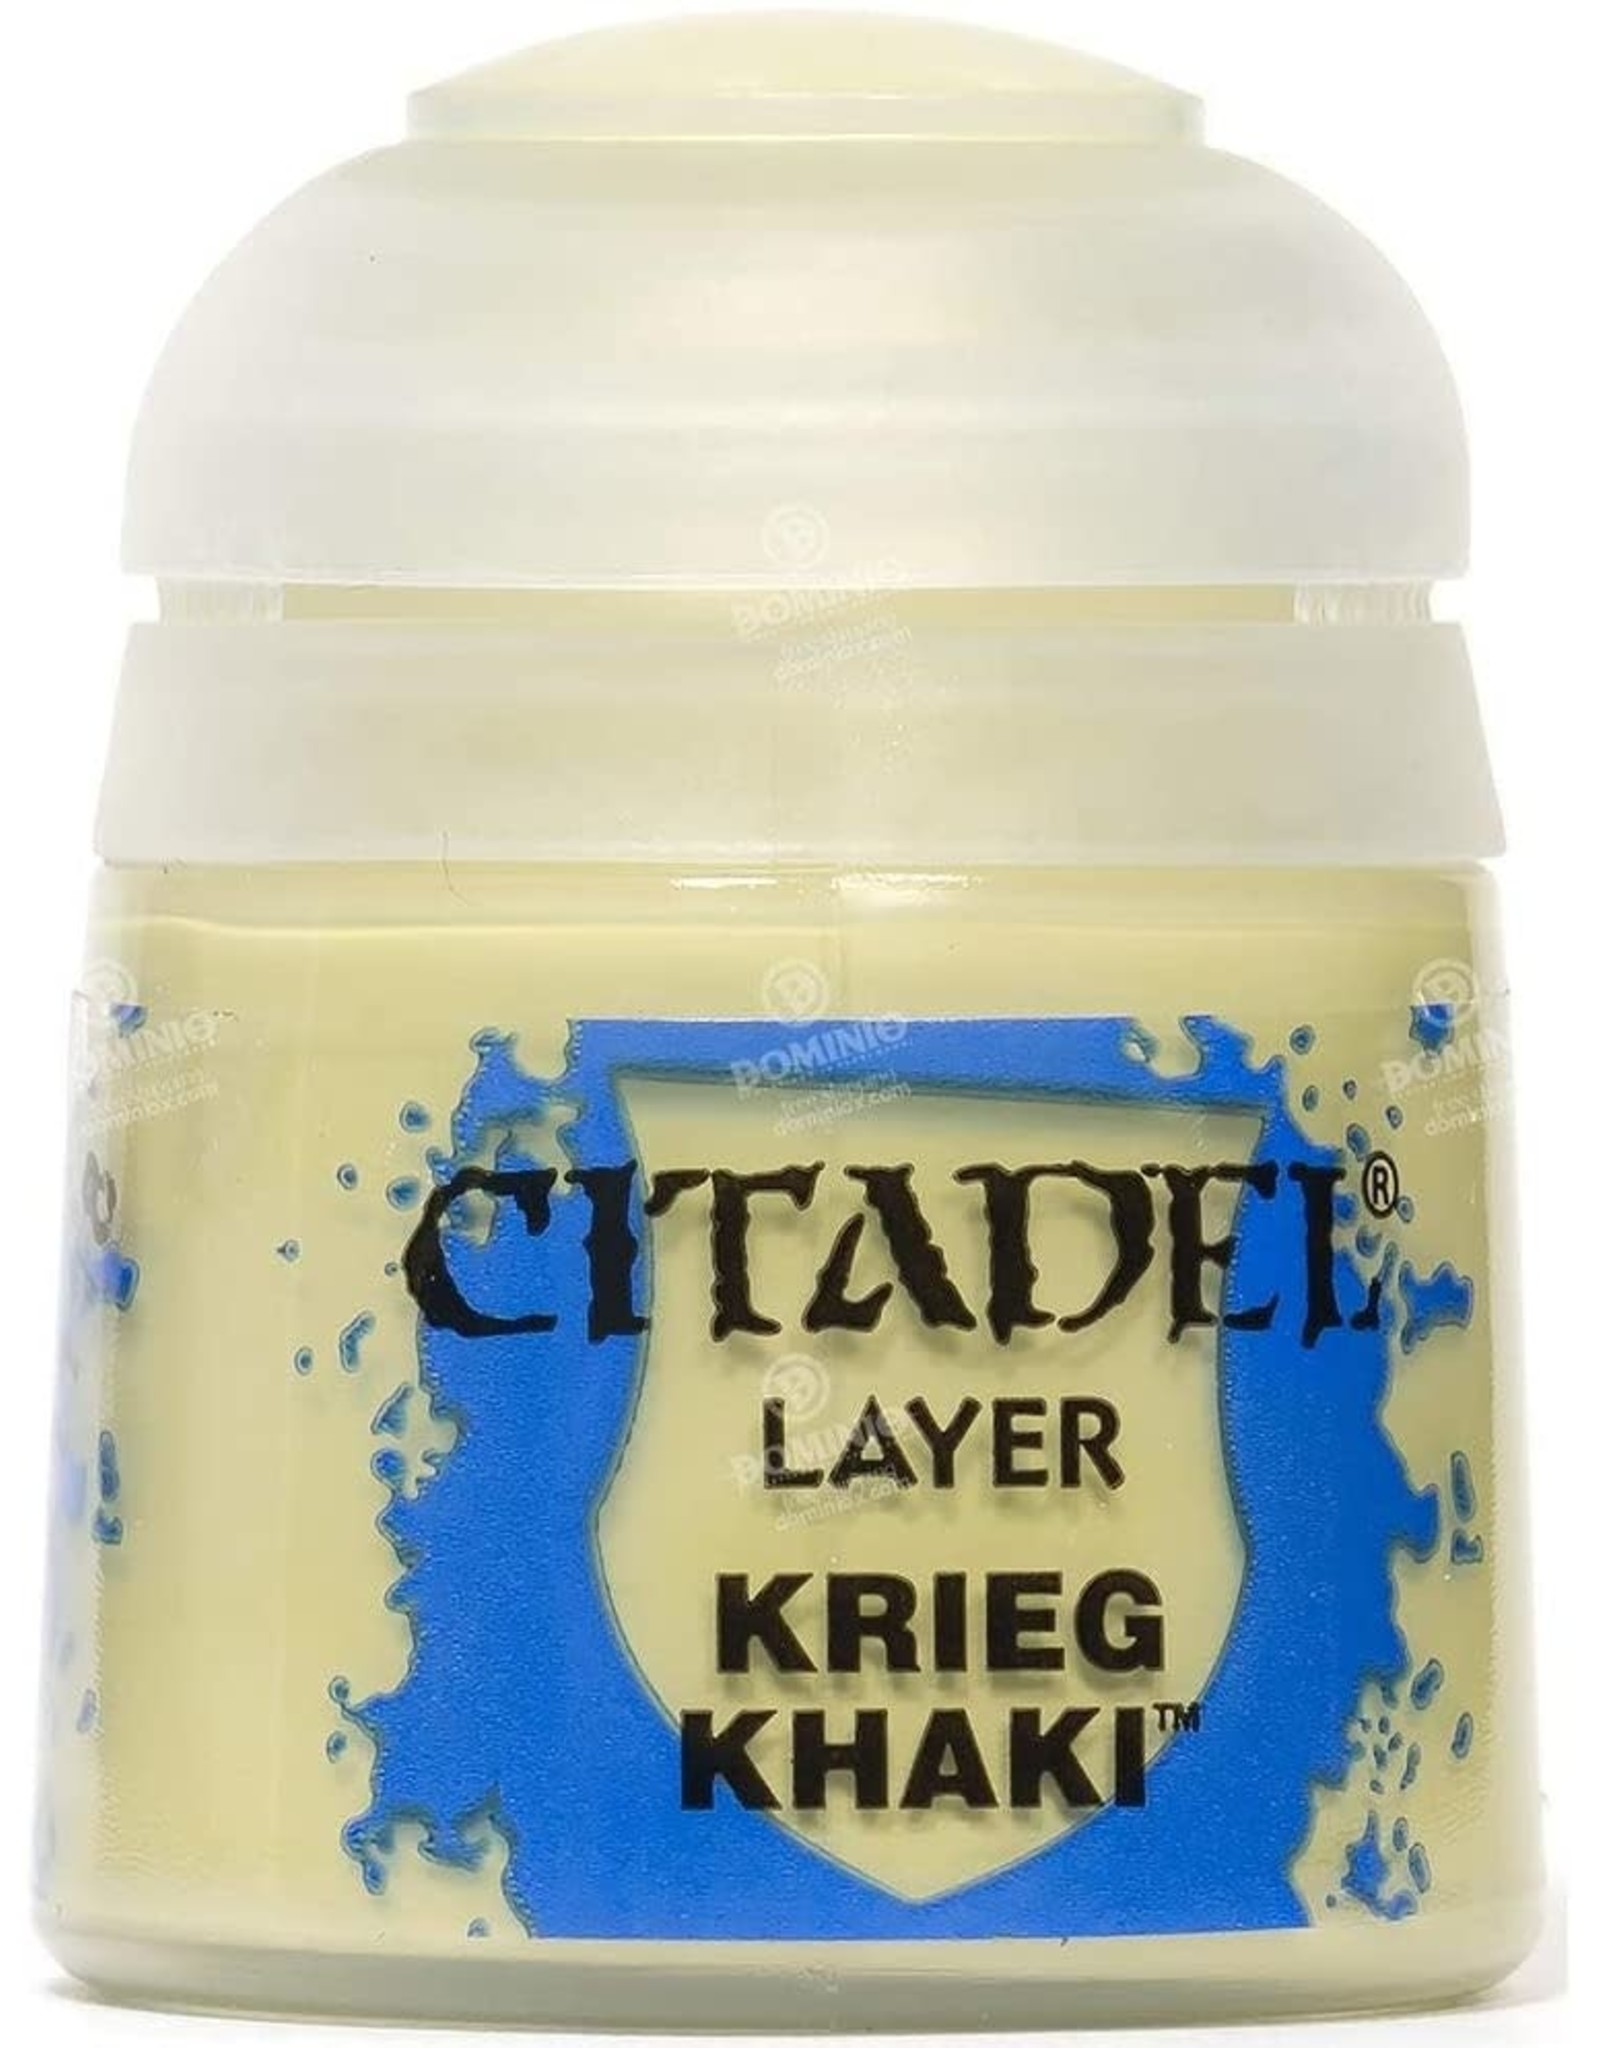 Games Workshop Citadel Paint: Krieg Khaki 12ml